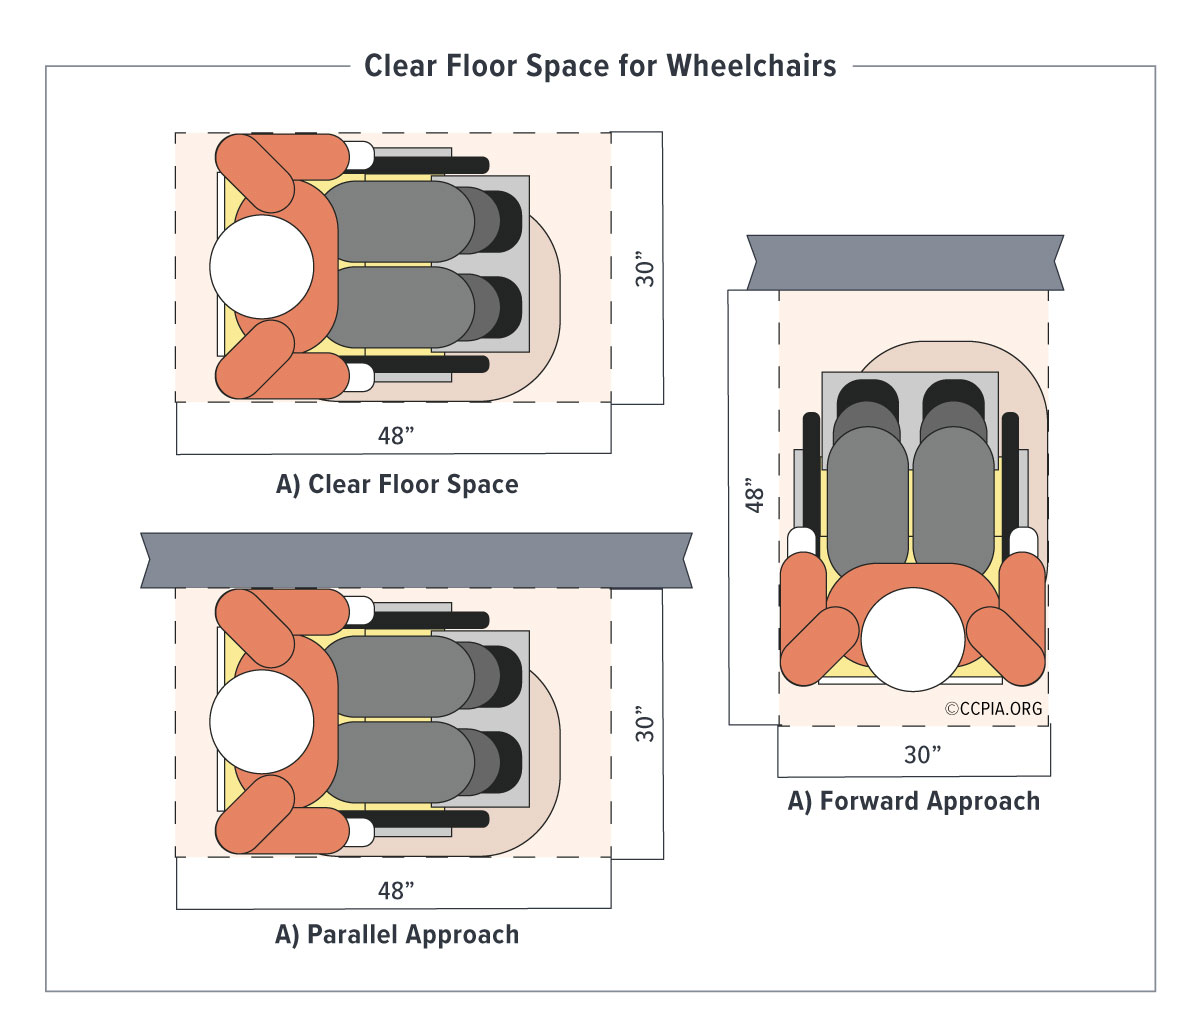 Clear floor space for wheelchairs, accessibility in public accommodations and commercial facilities.